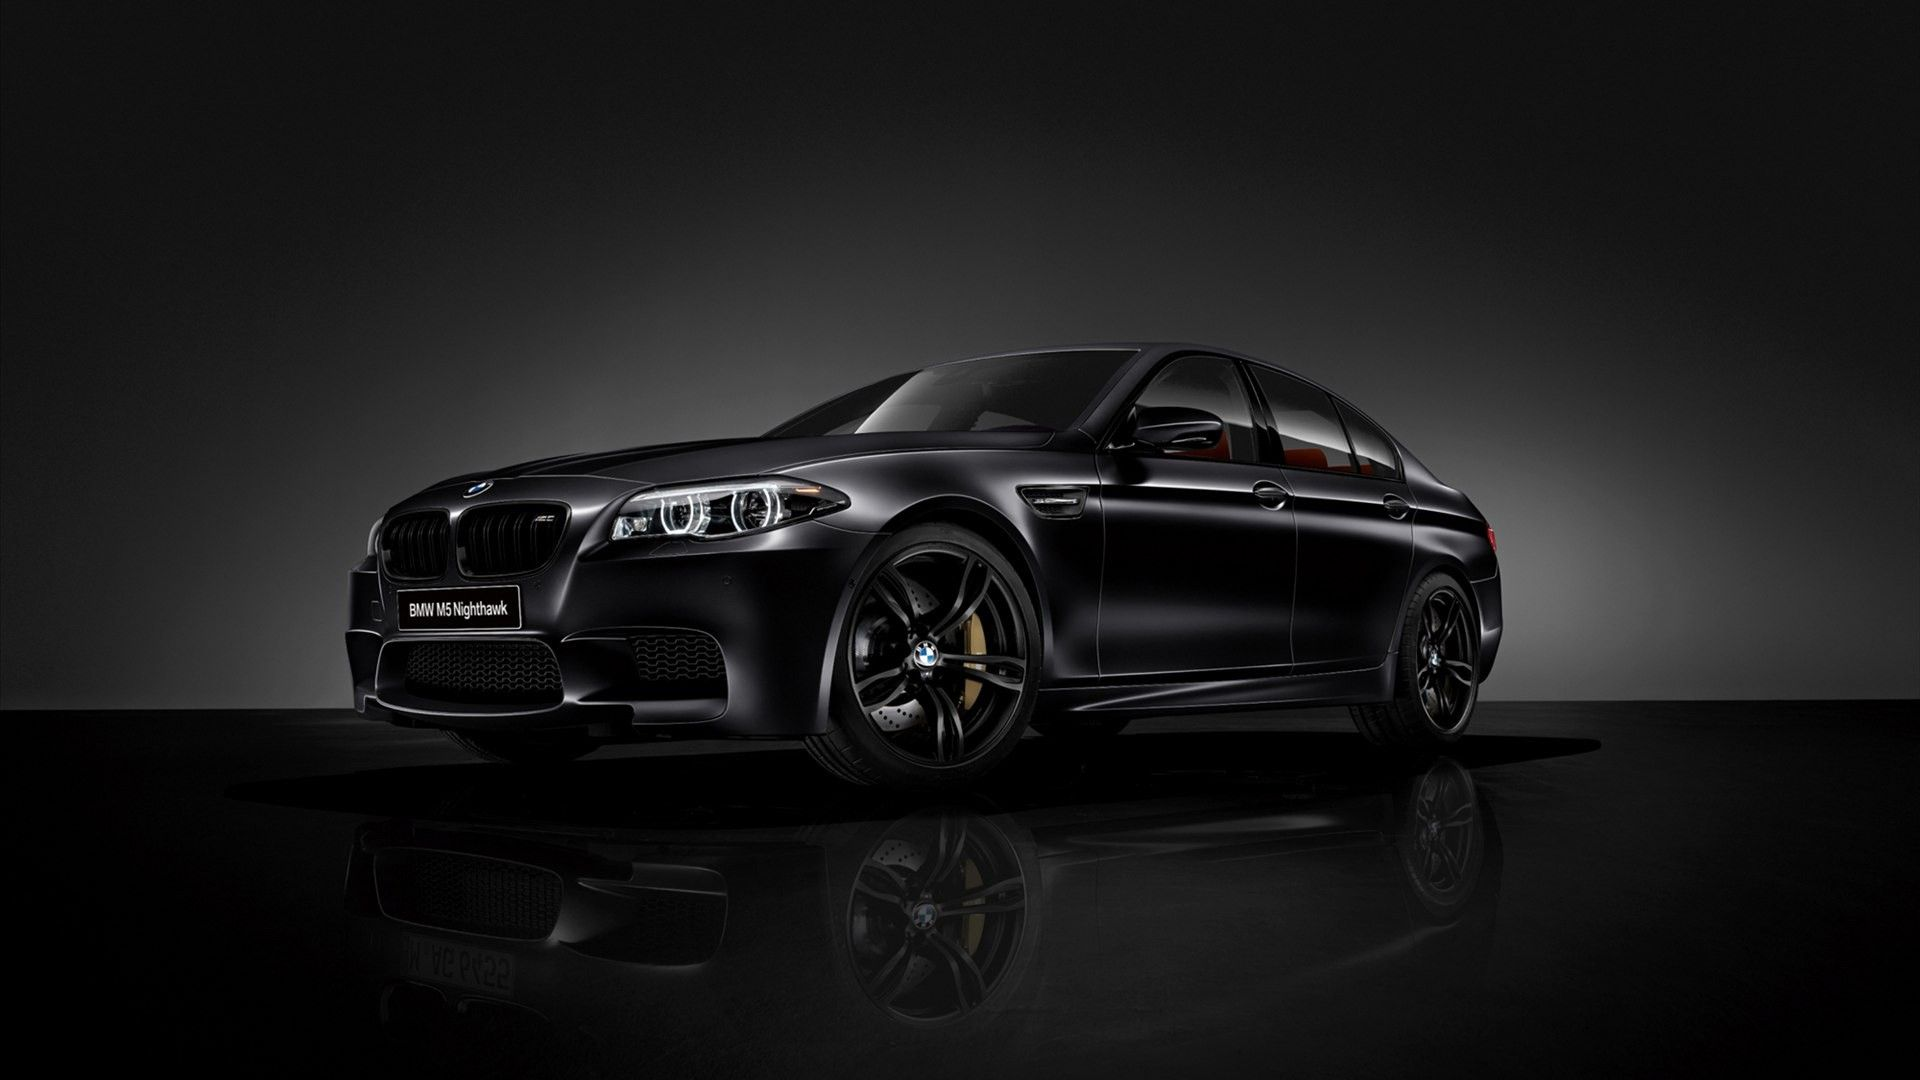 Get 1920x1080 Bmw Black Wallpaper Images In 2021 Bmw Wallpapers Bmw Bmw M5